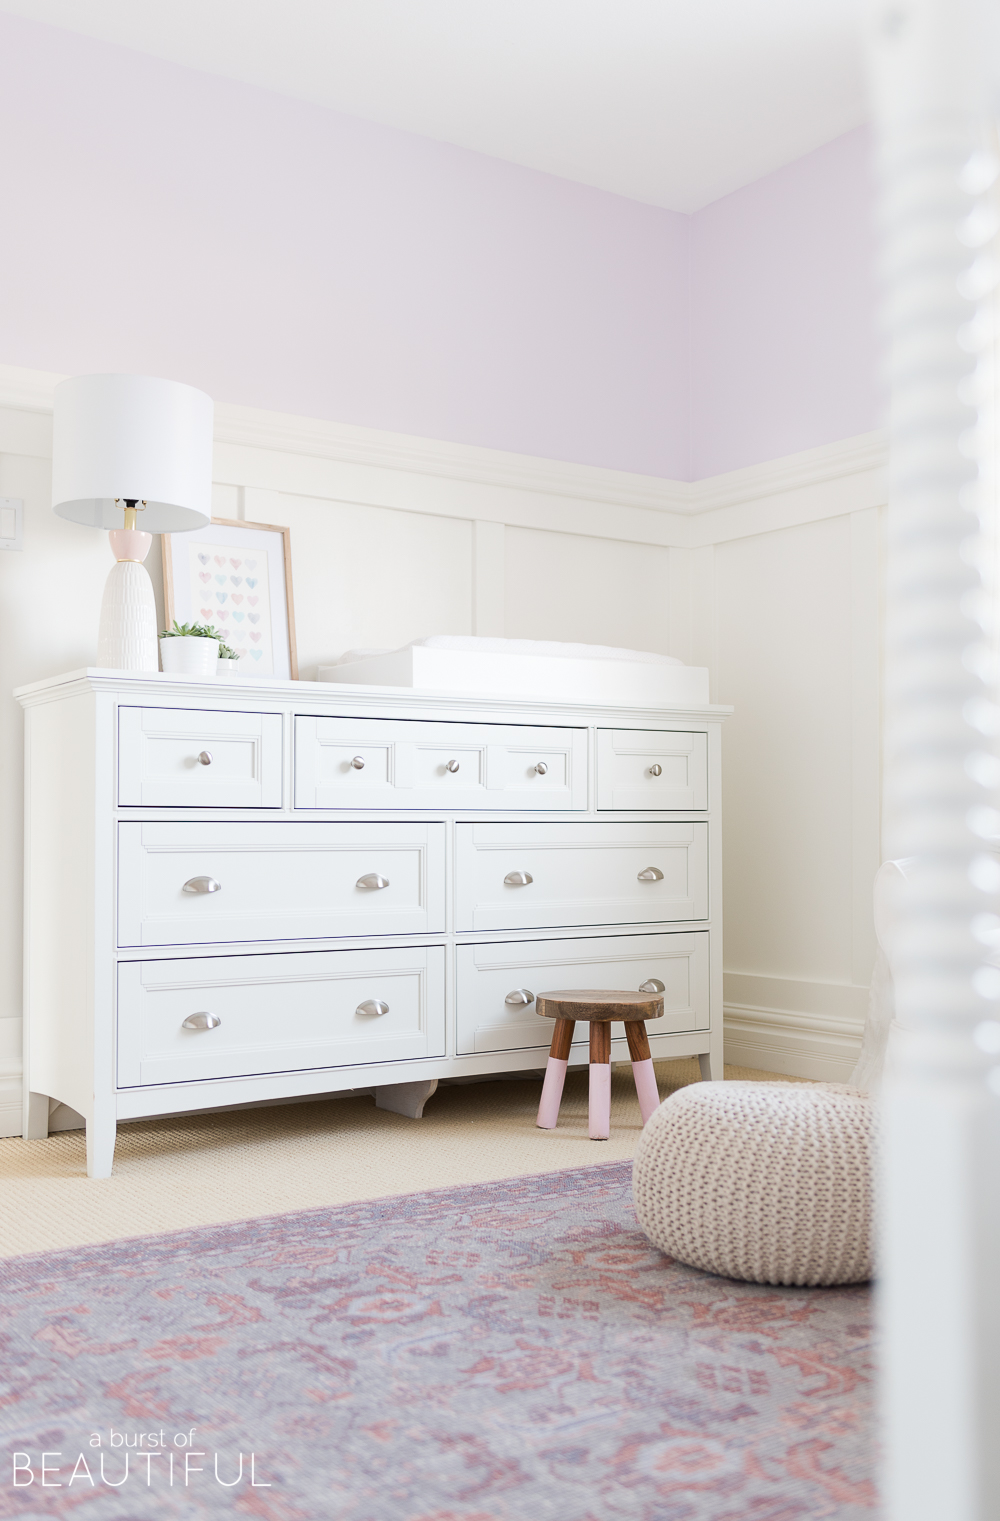 Board and batten wainscotting is a simple and inexpensive way to add character and detail to any space. Find our easy tutorial here.